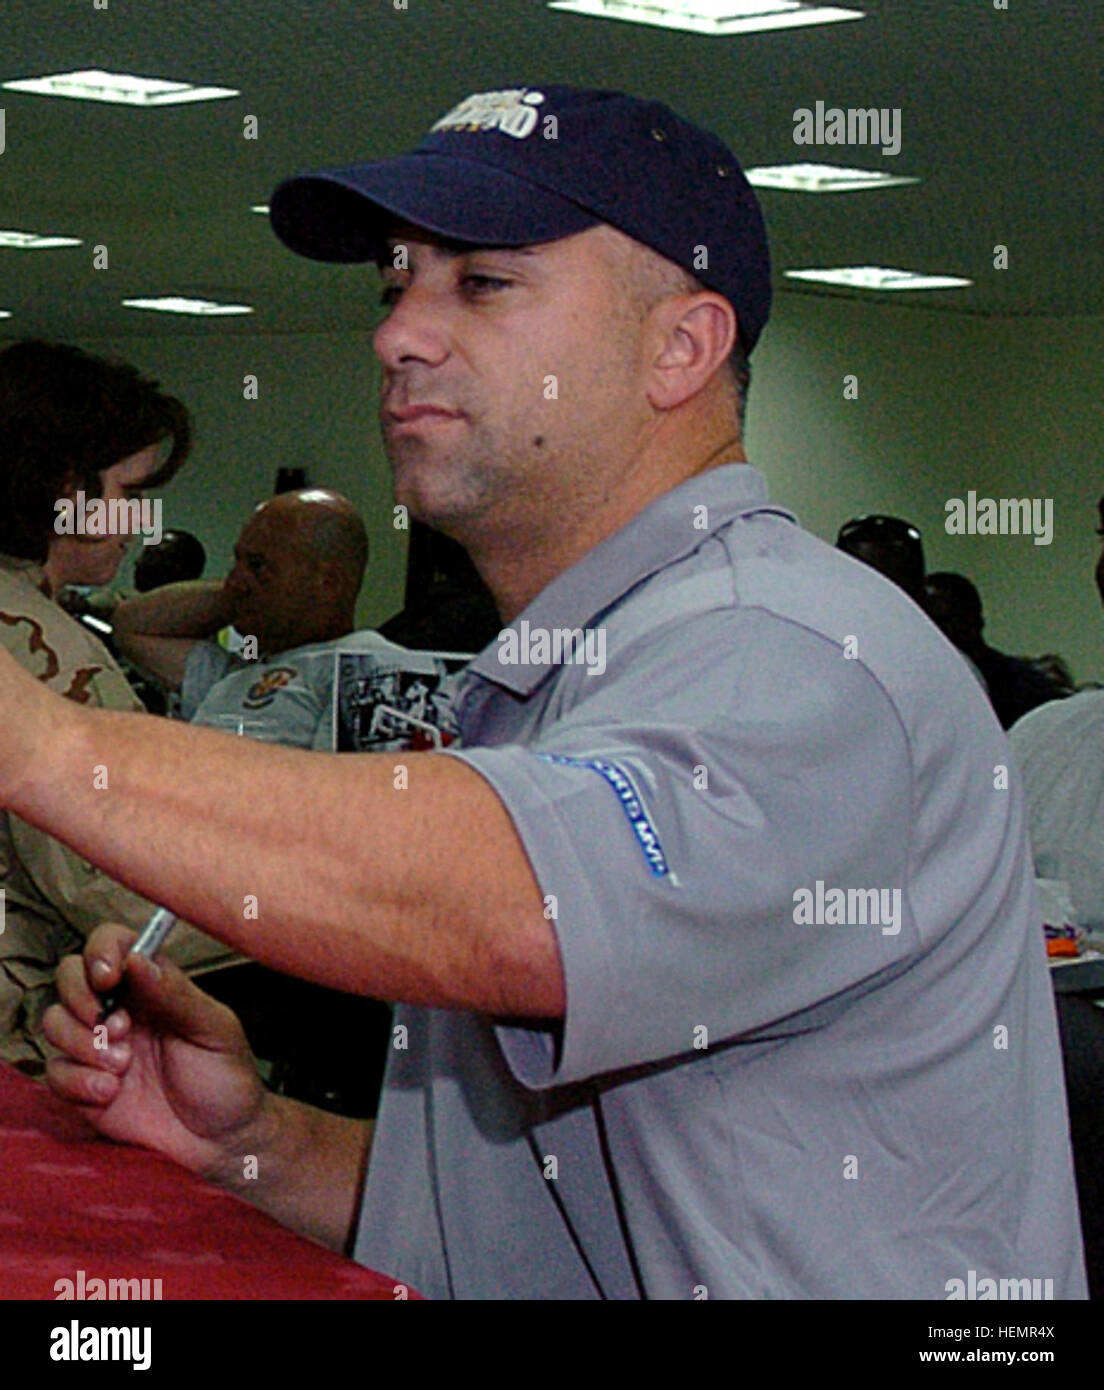 U.S. Navy Lt. Ivory Ervin, from Memphis, Tenn., receives an autographed baseball from Frank Menechino, a 15-year - Stock Image